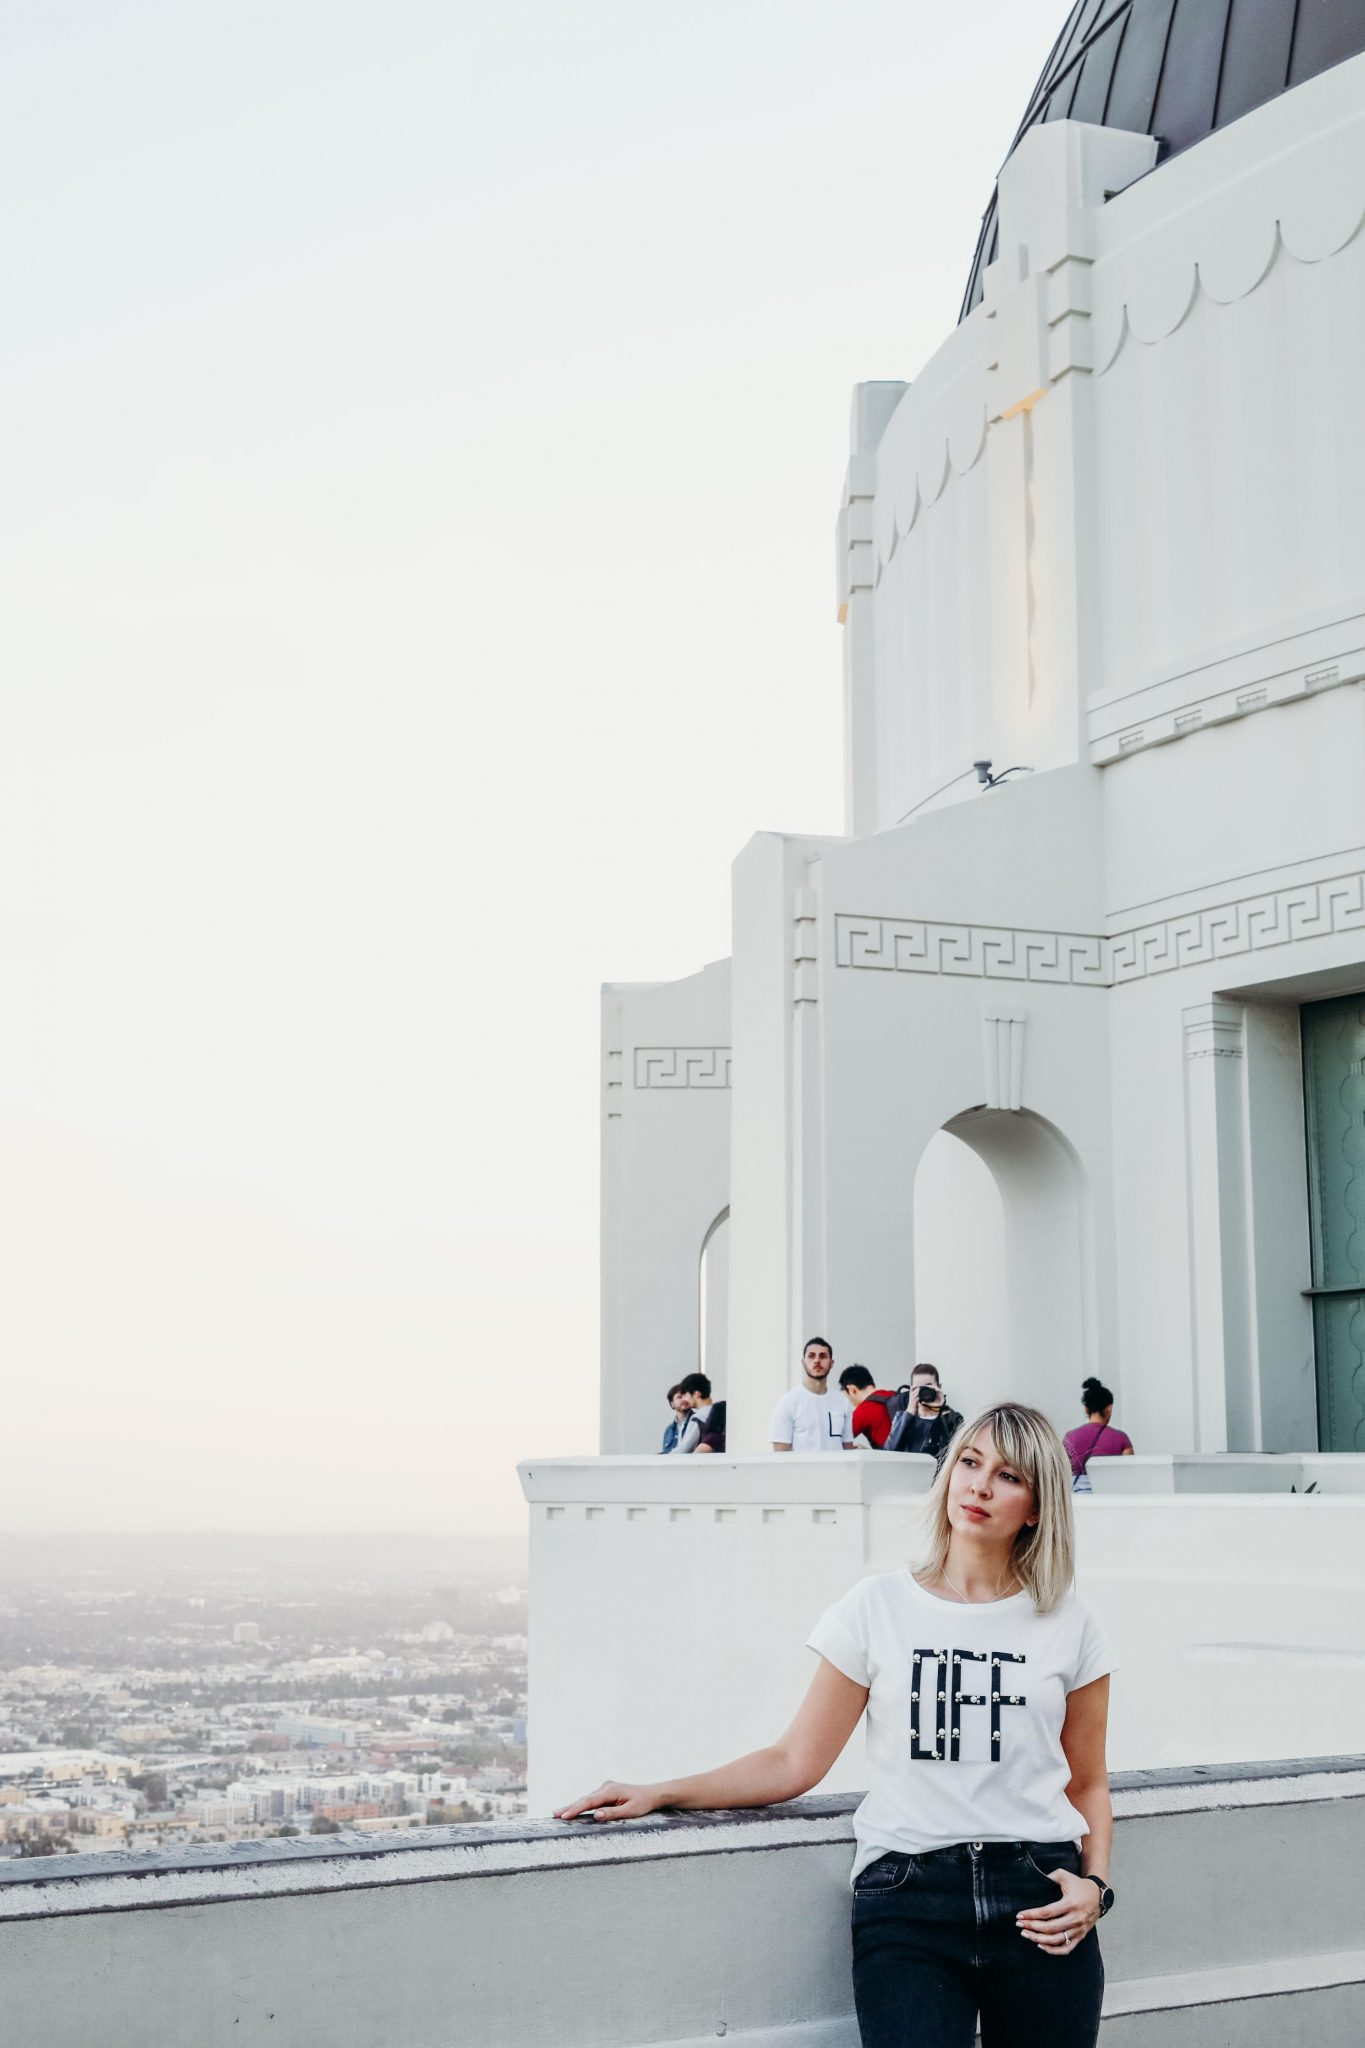 griffith observatory (4 of 6)